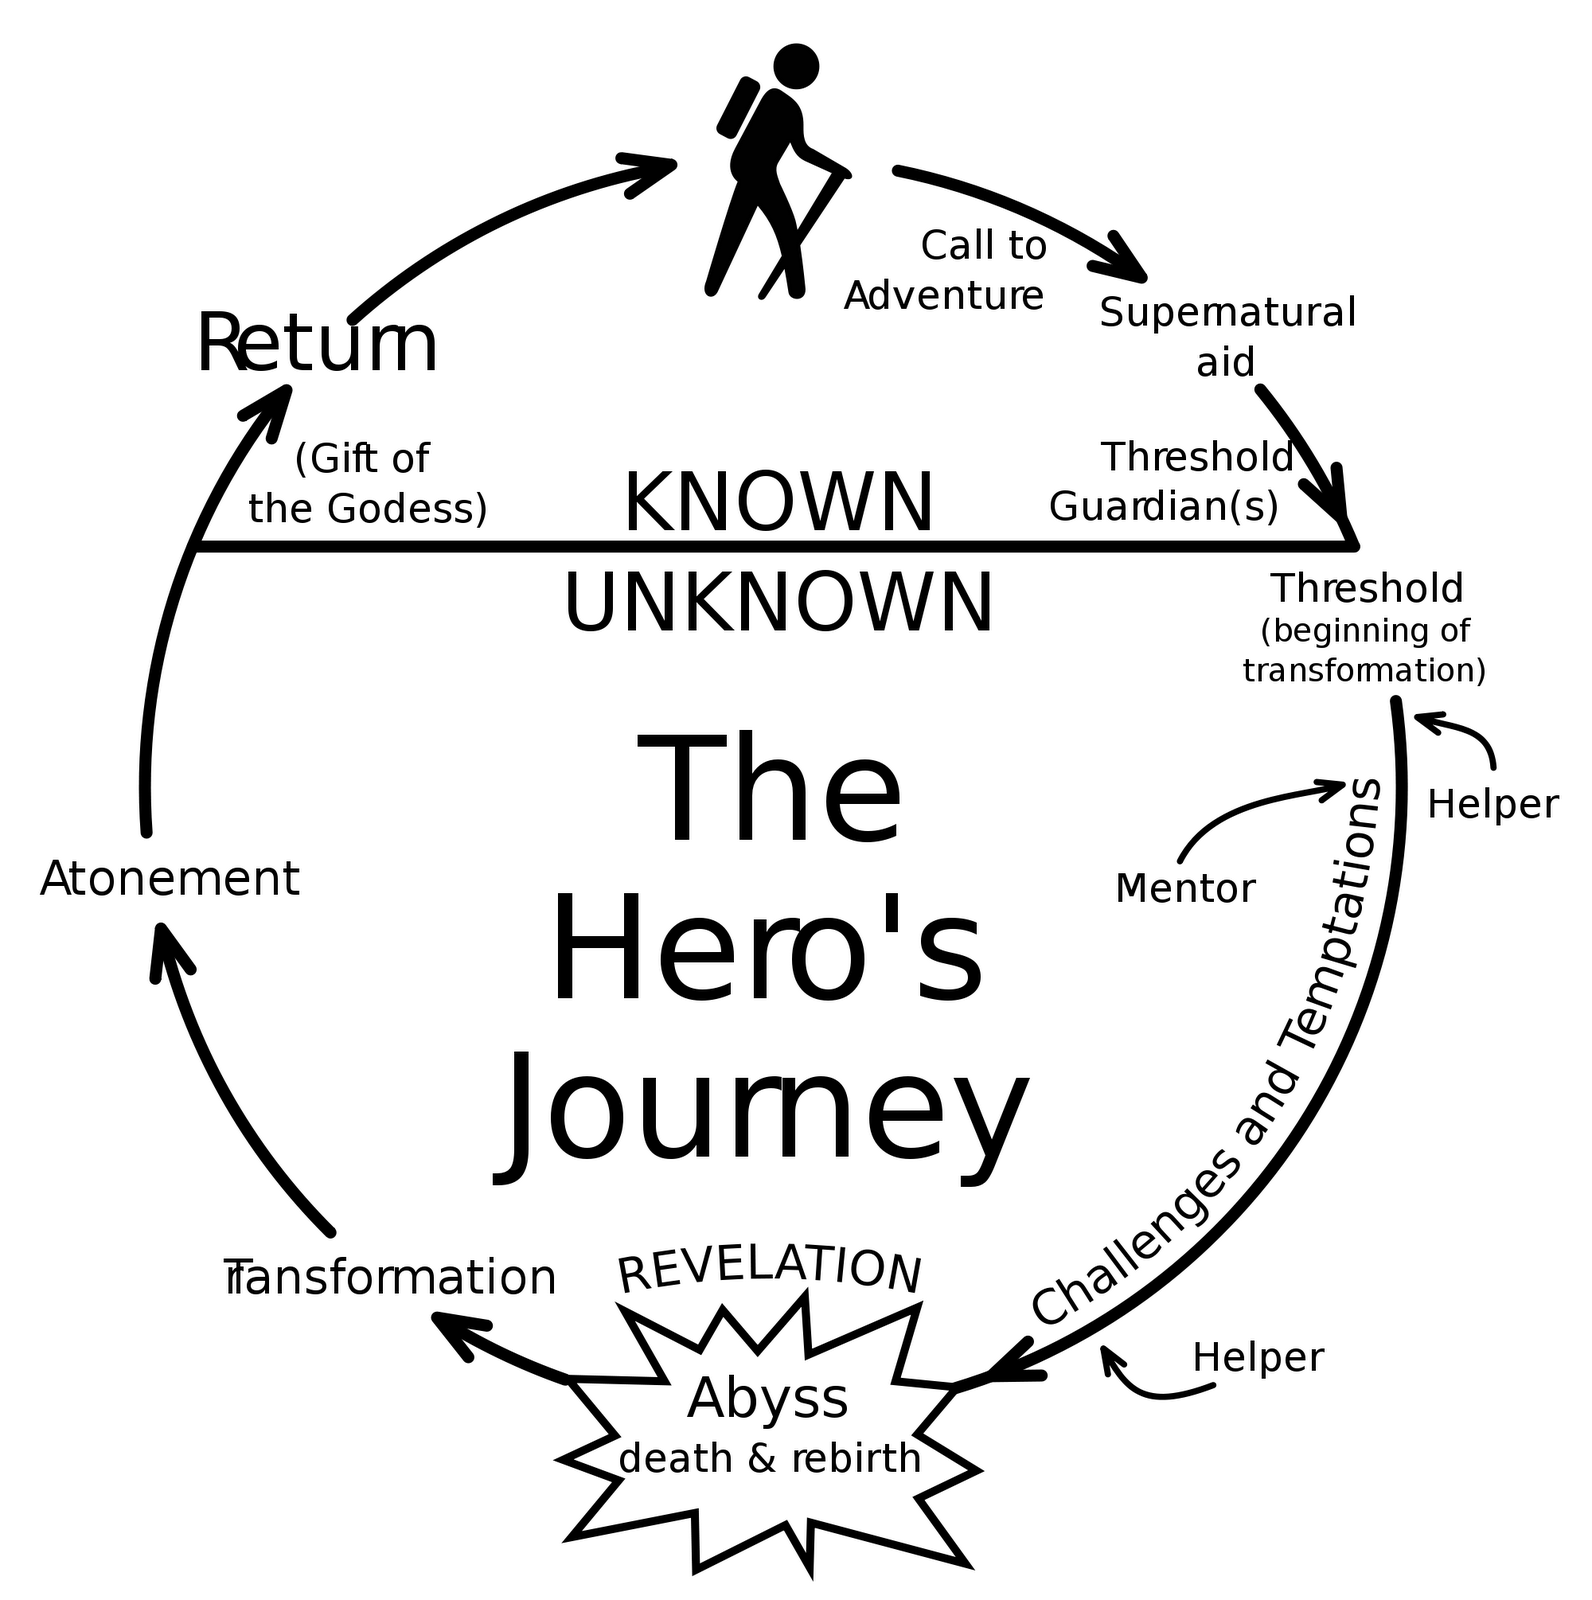 beowulf essay epic hero cycle buy paper bing